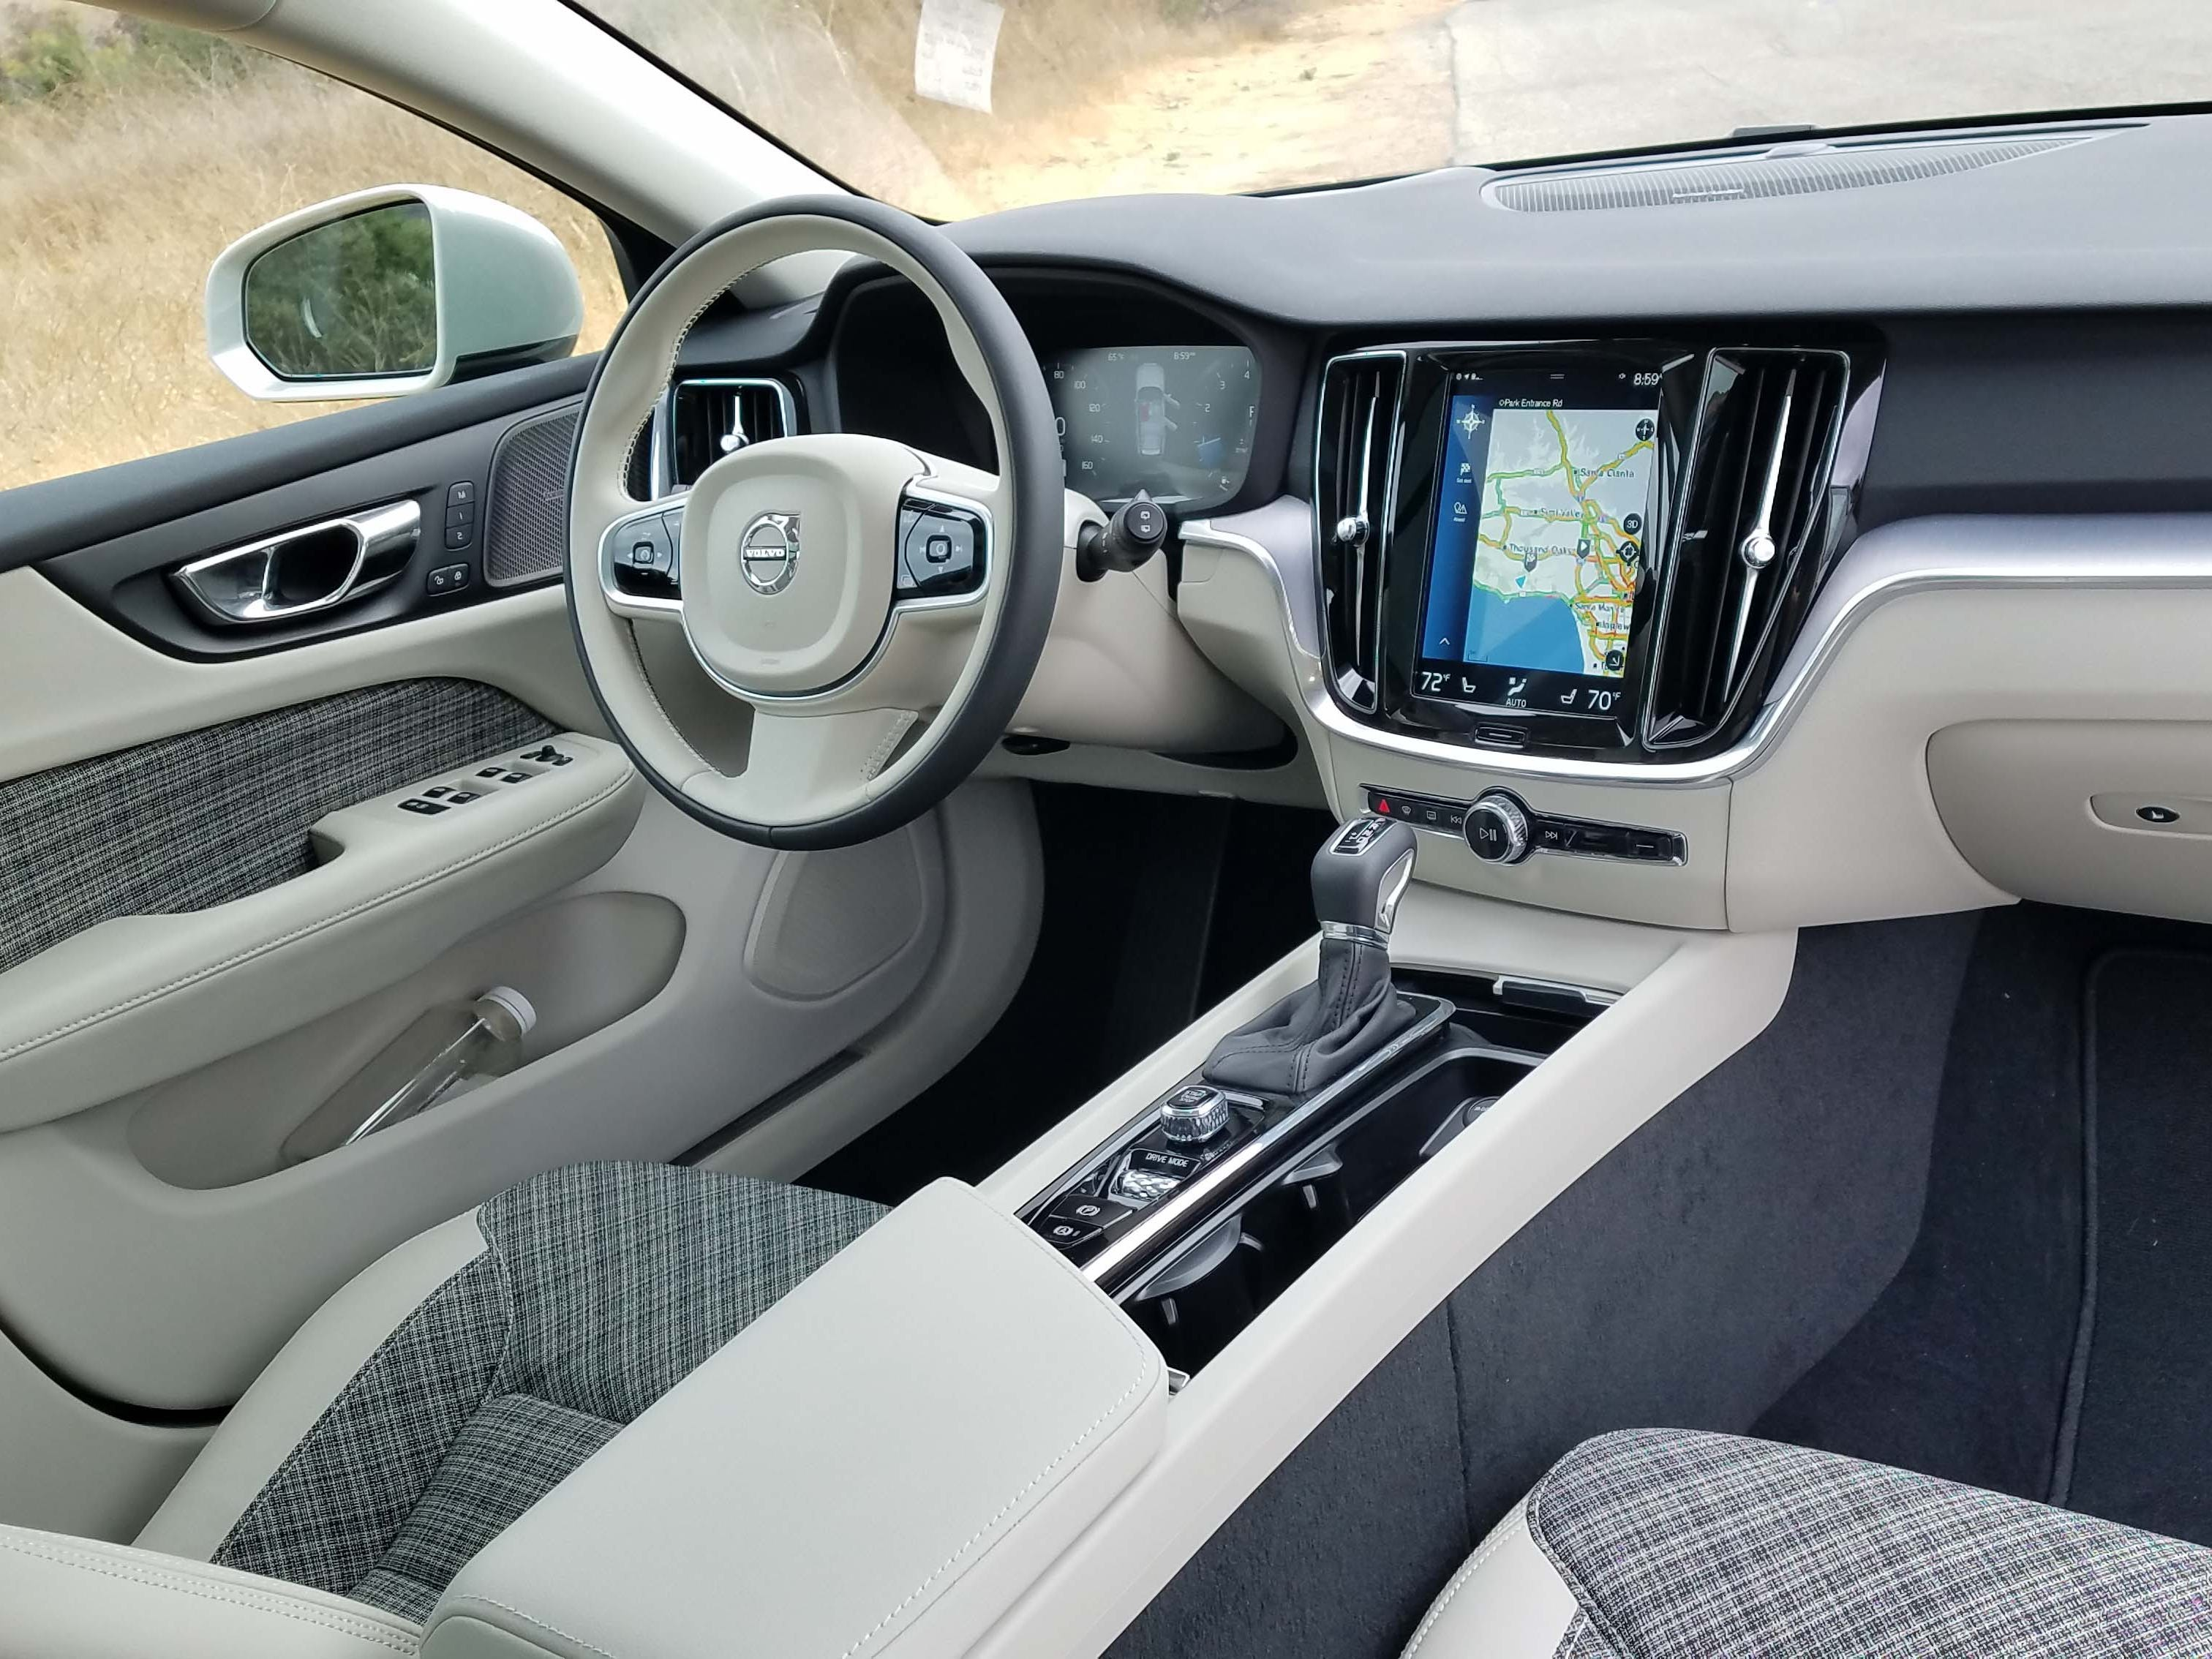 The interior of the 2019 Volvo V60 wagon features a pepper and salt theme.